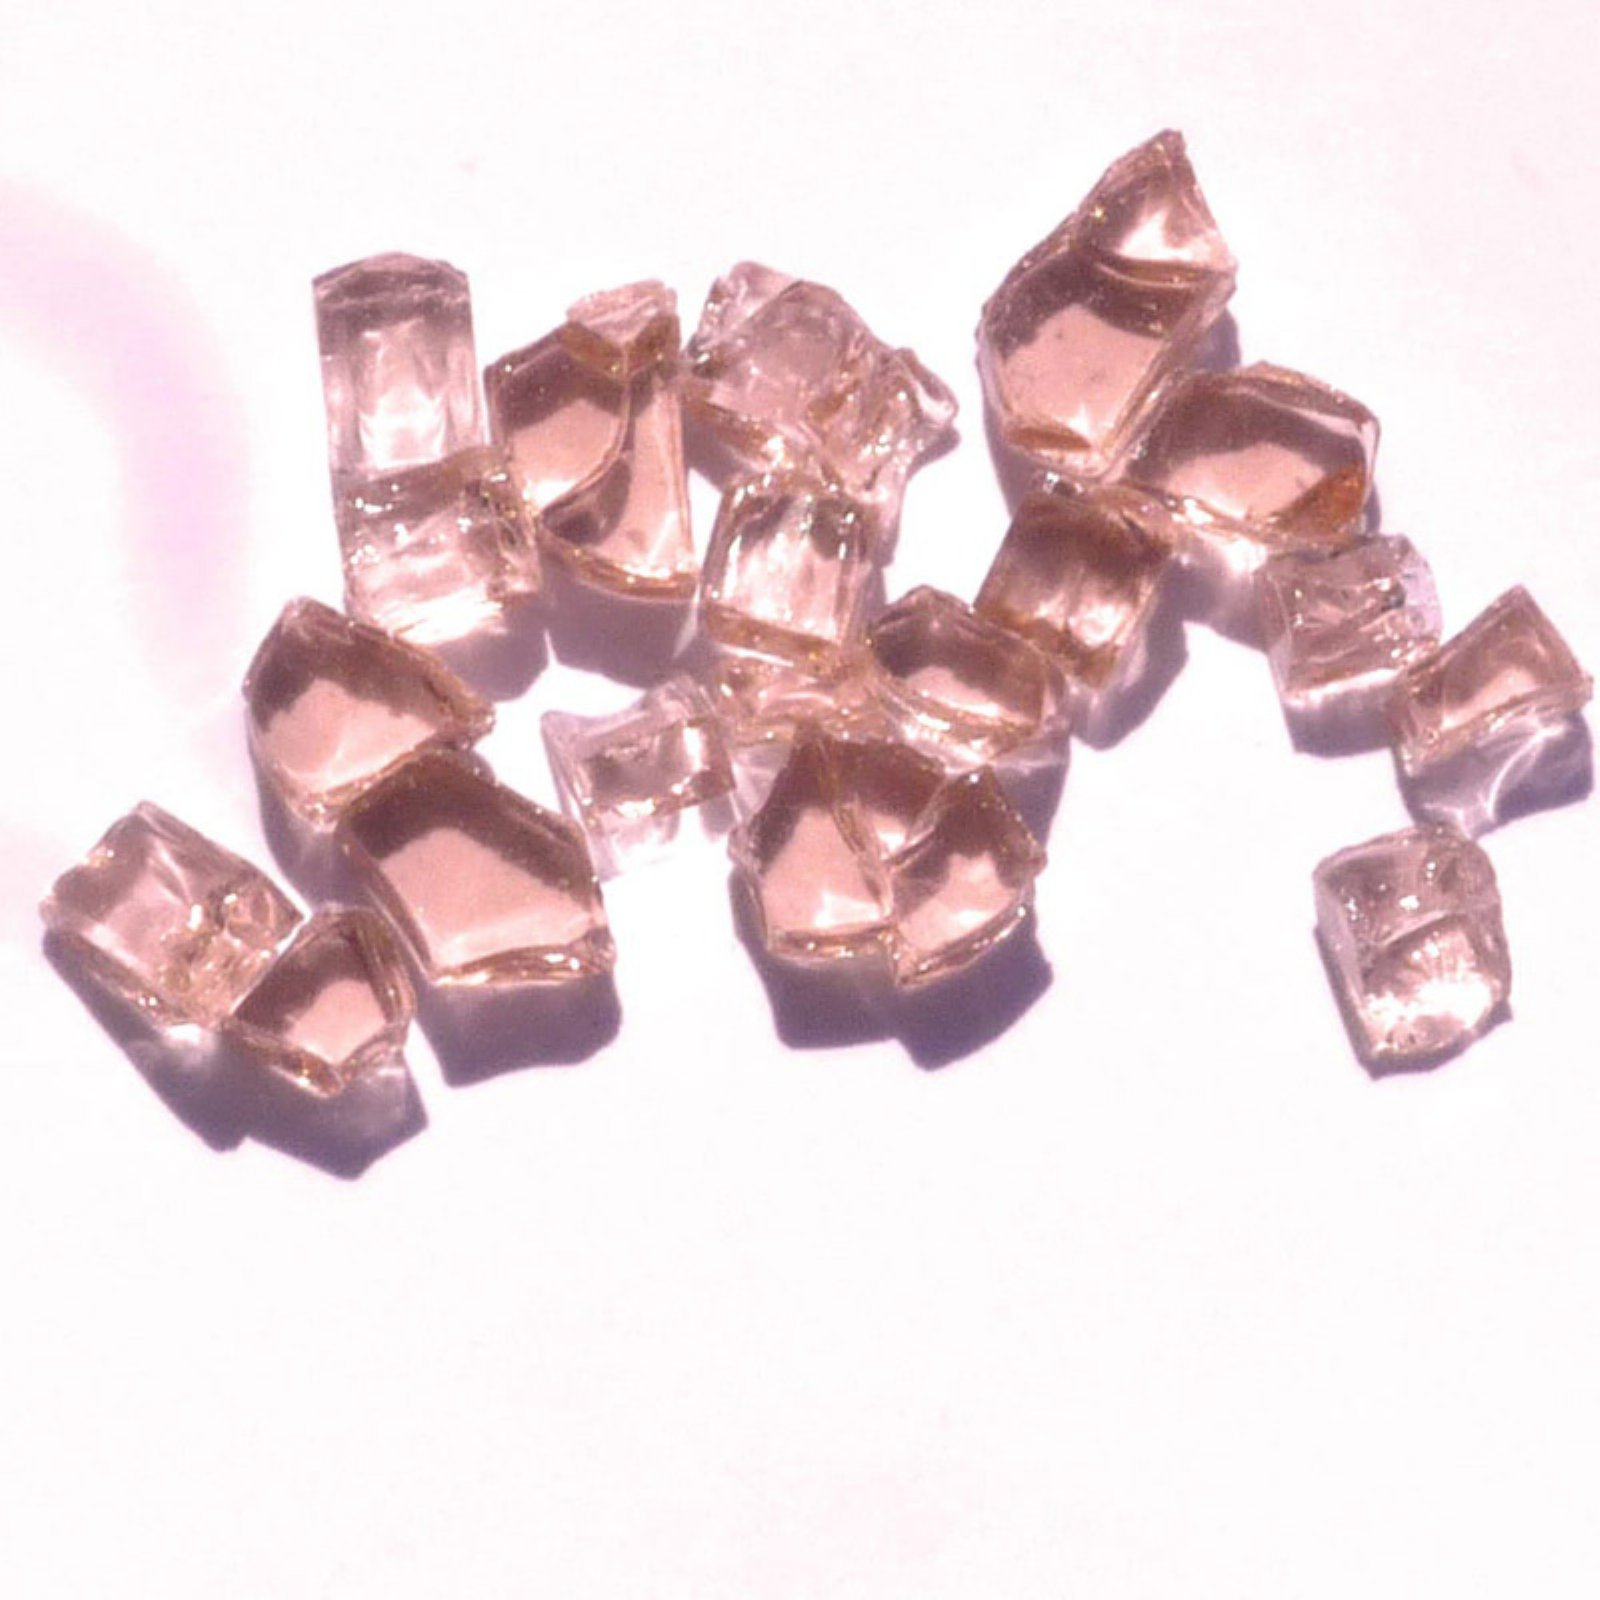 Tretco Rose Fire Glass Crystals